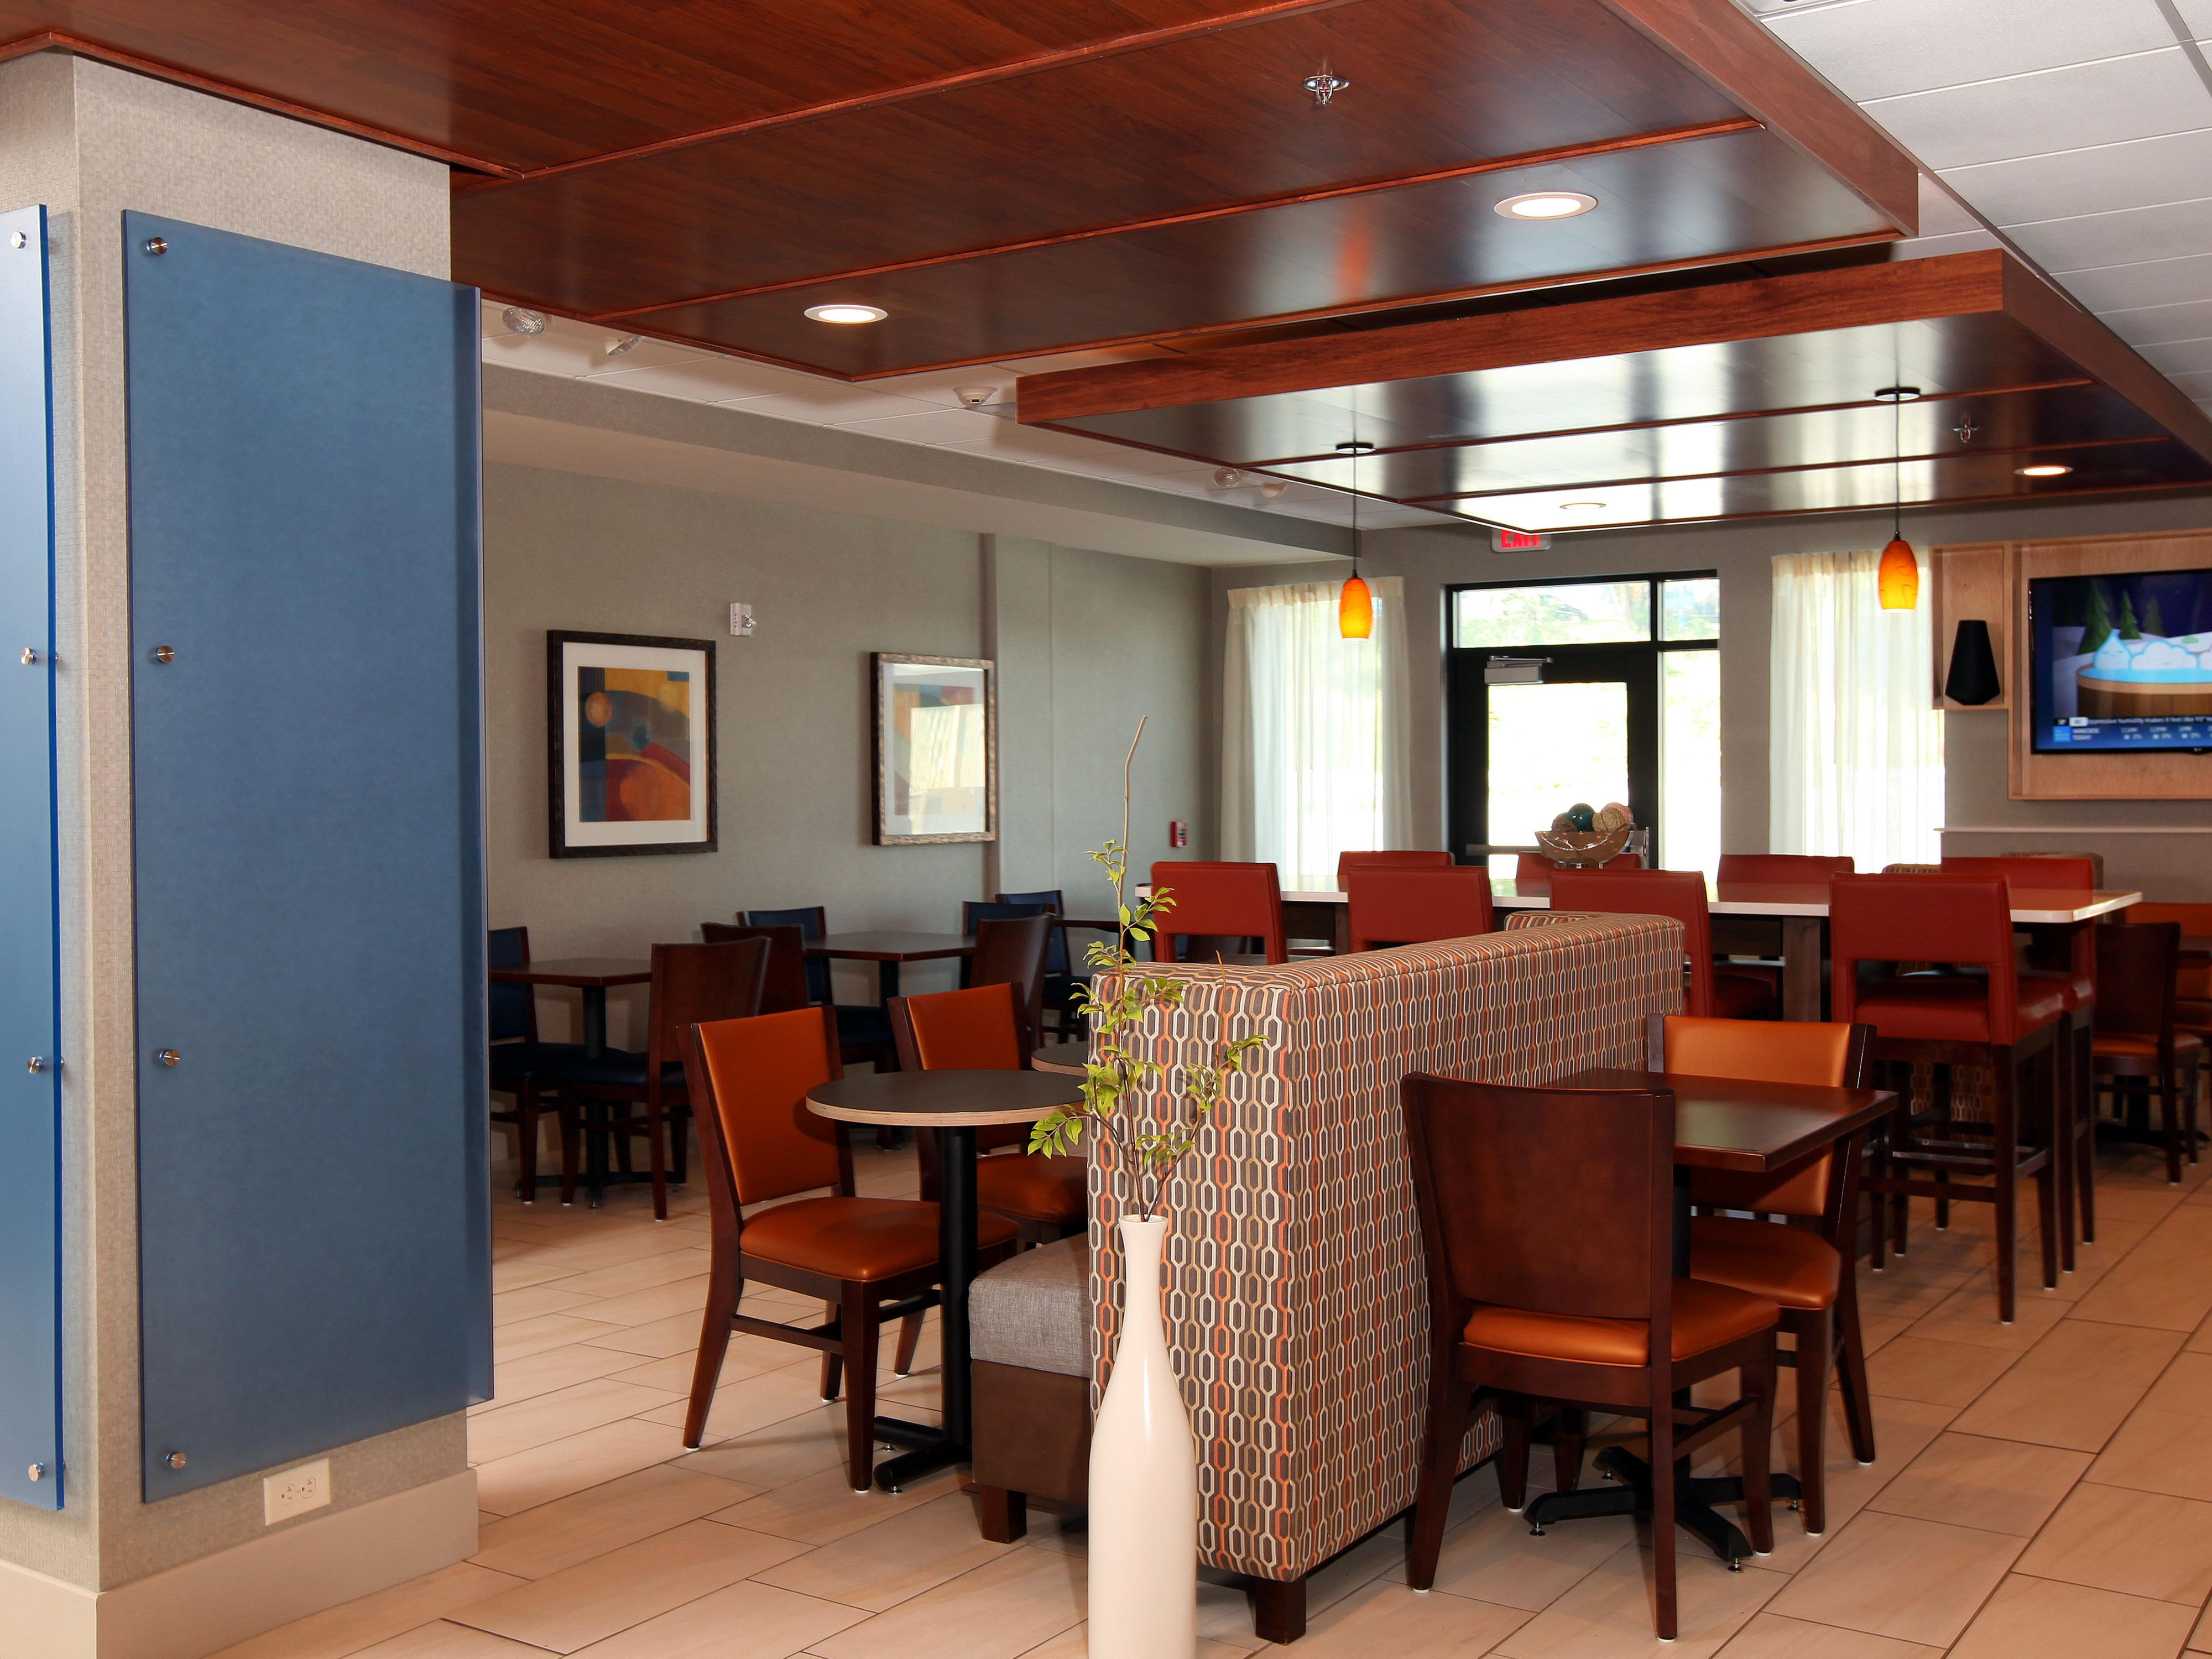 Dine, mingle or work. Our lobby is available for your use all day.